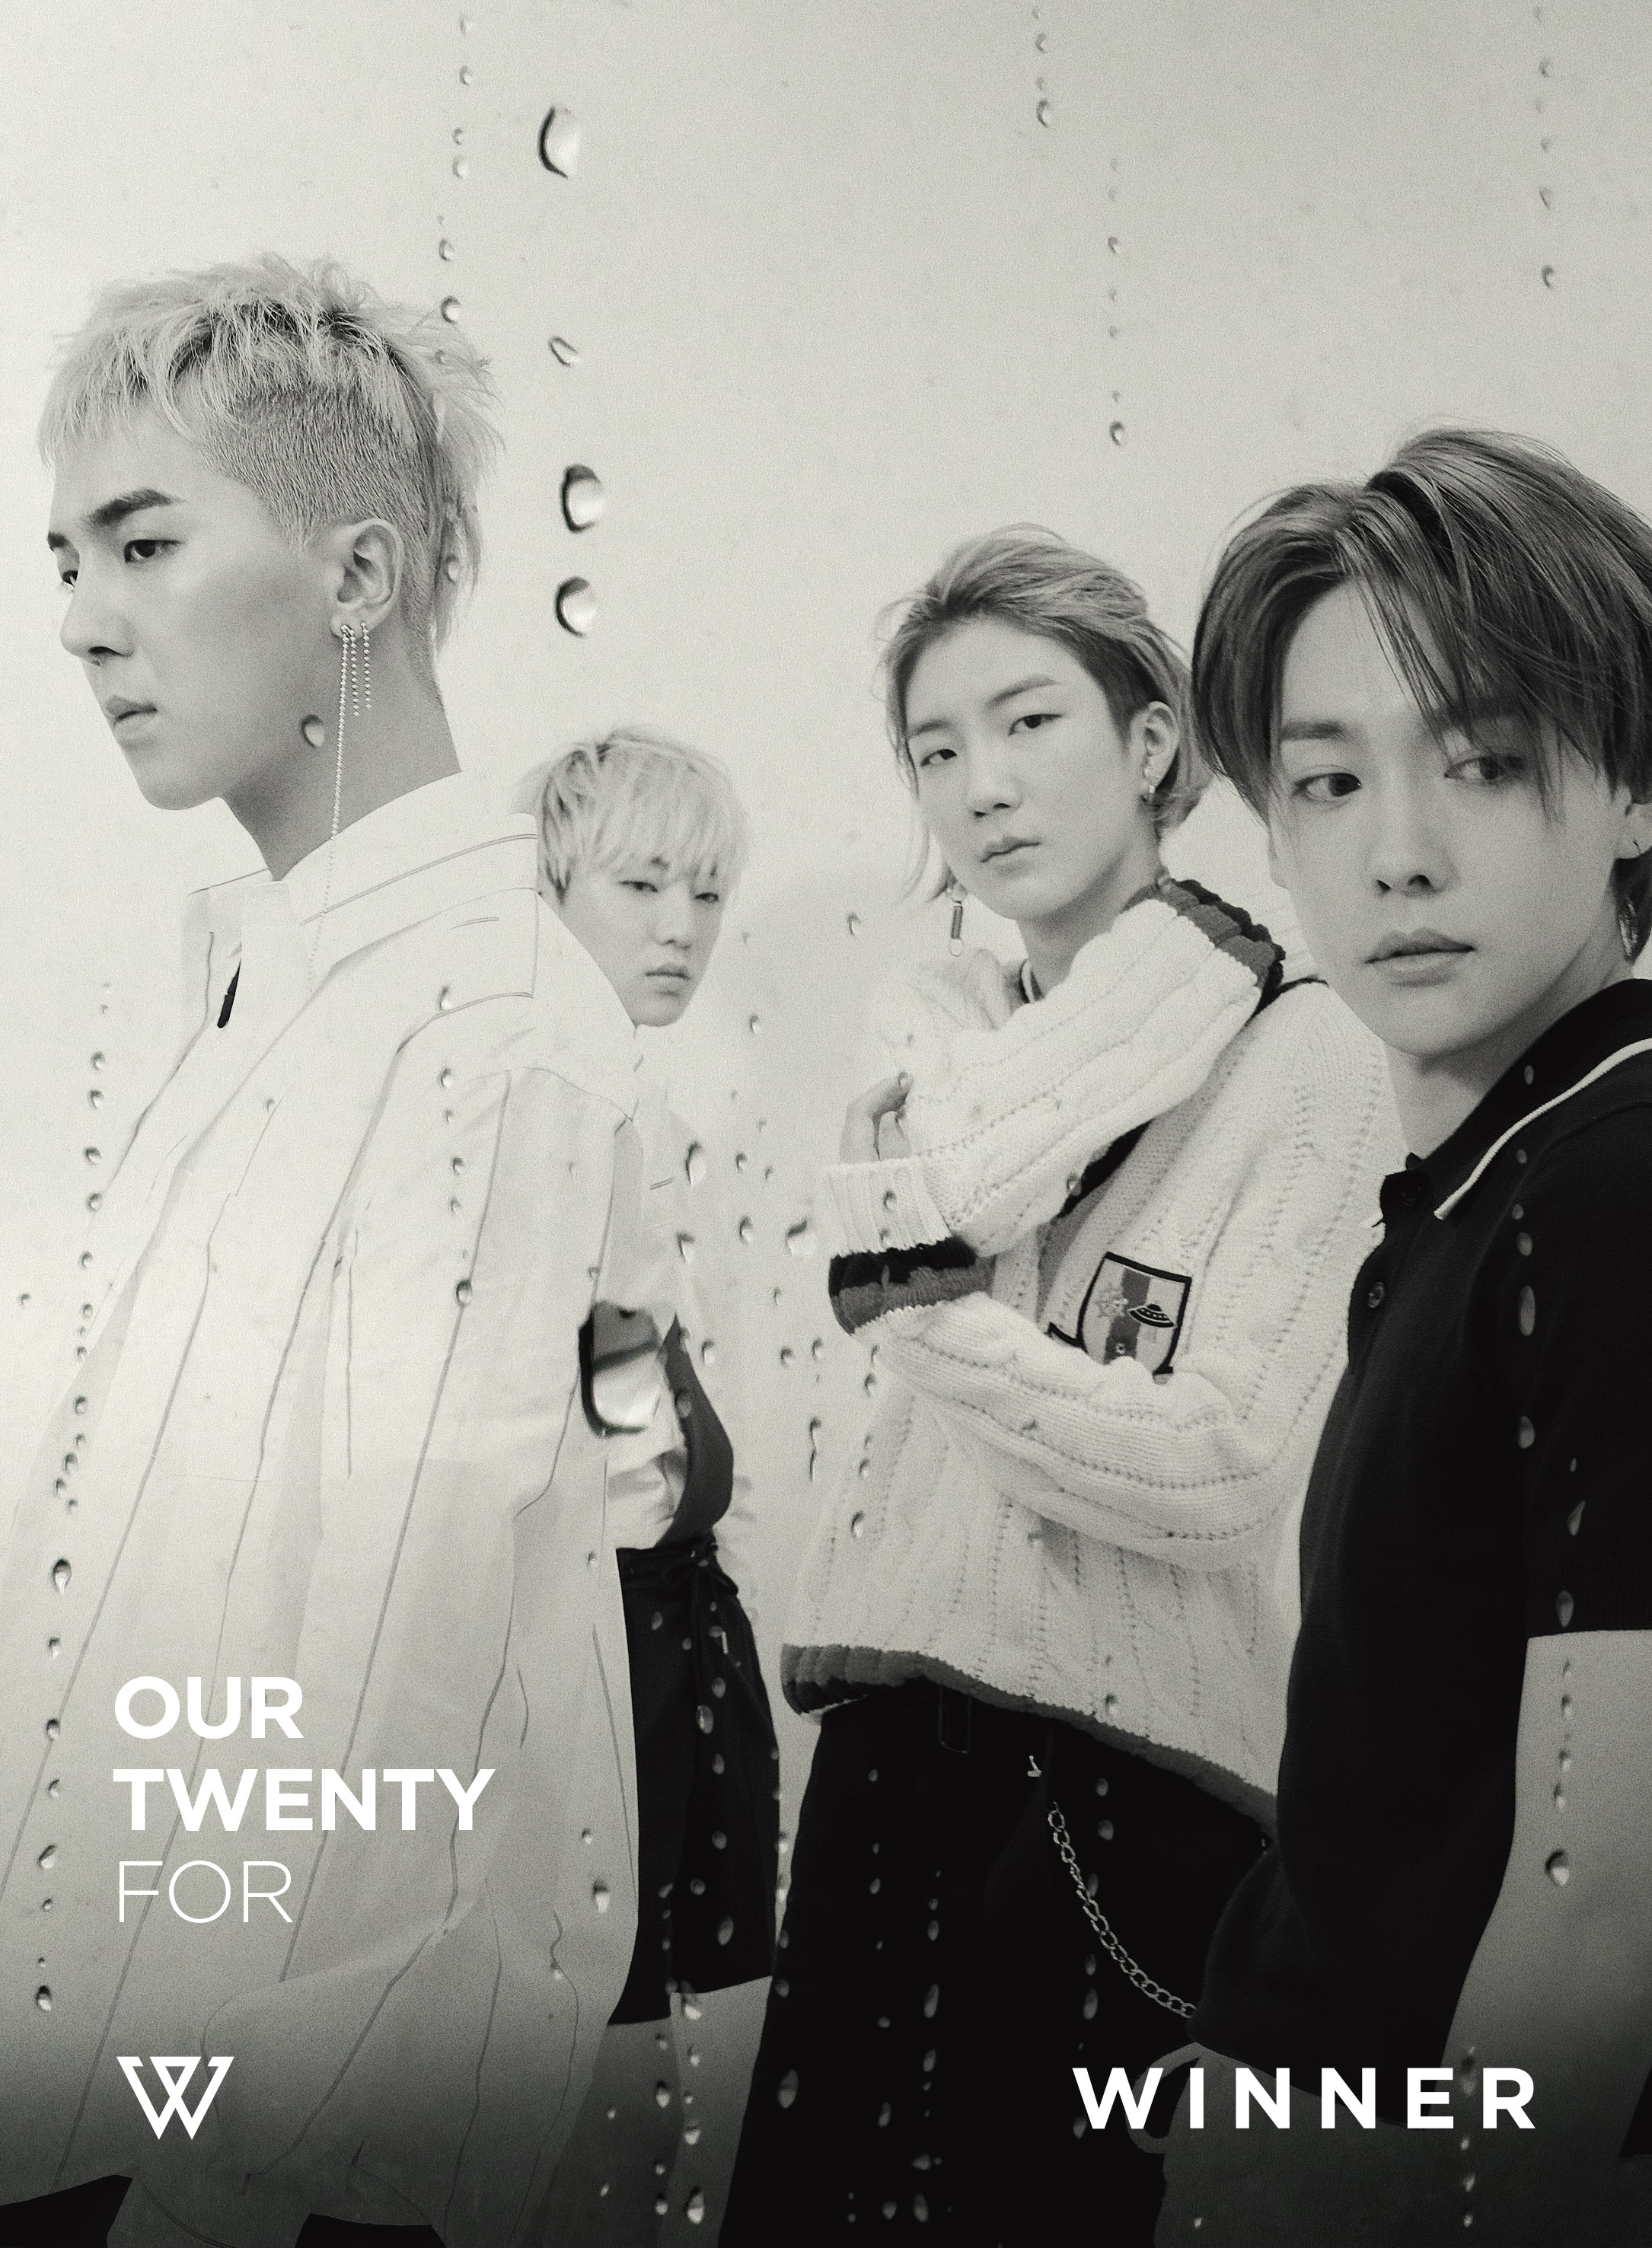 Our Twenty For (album)